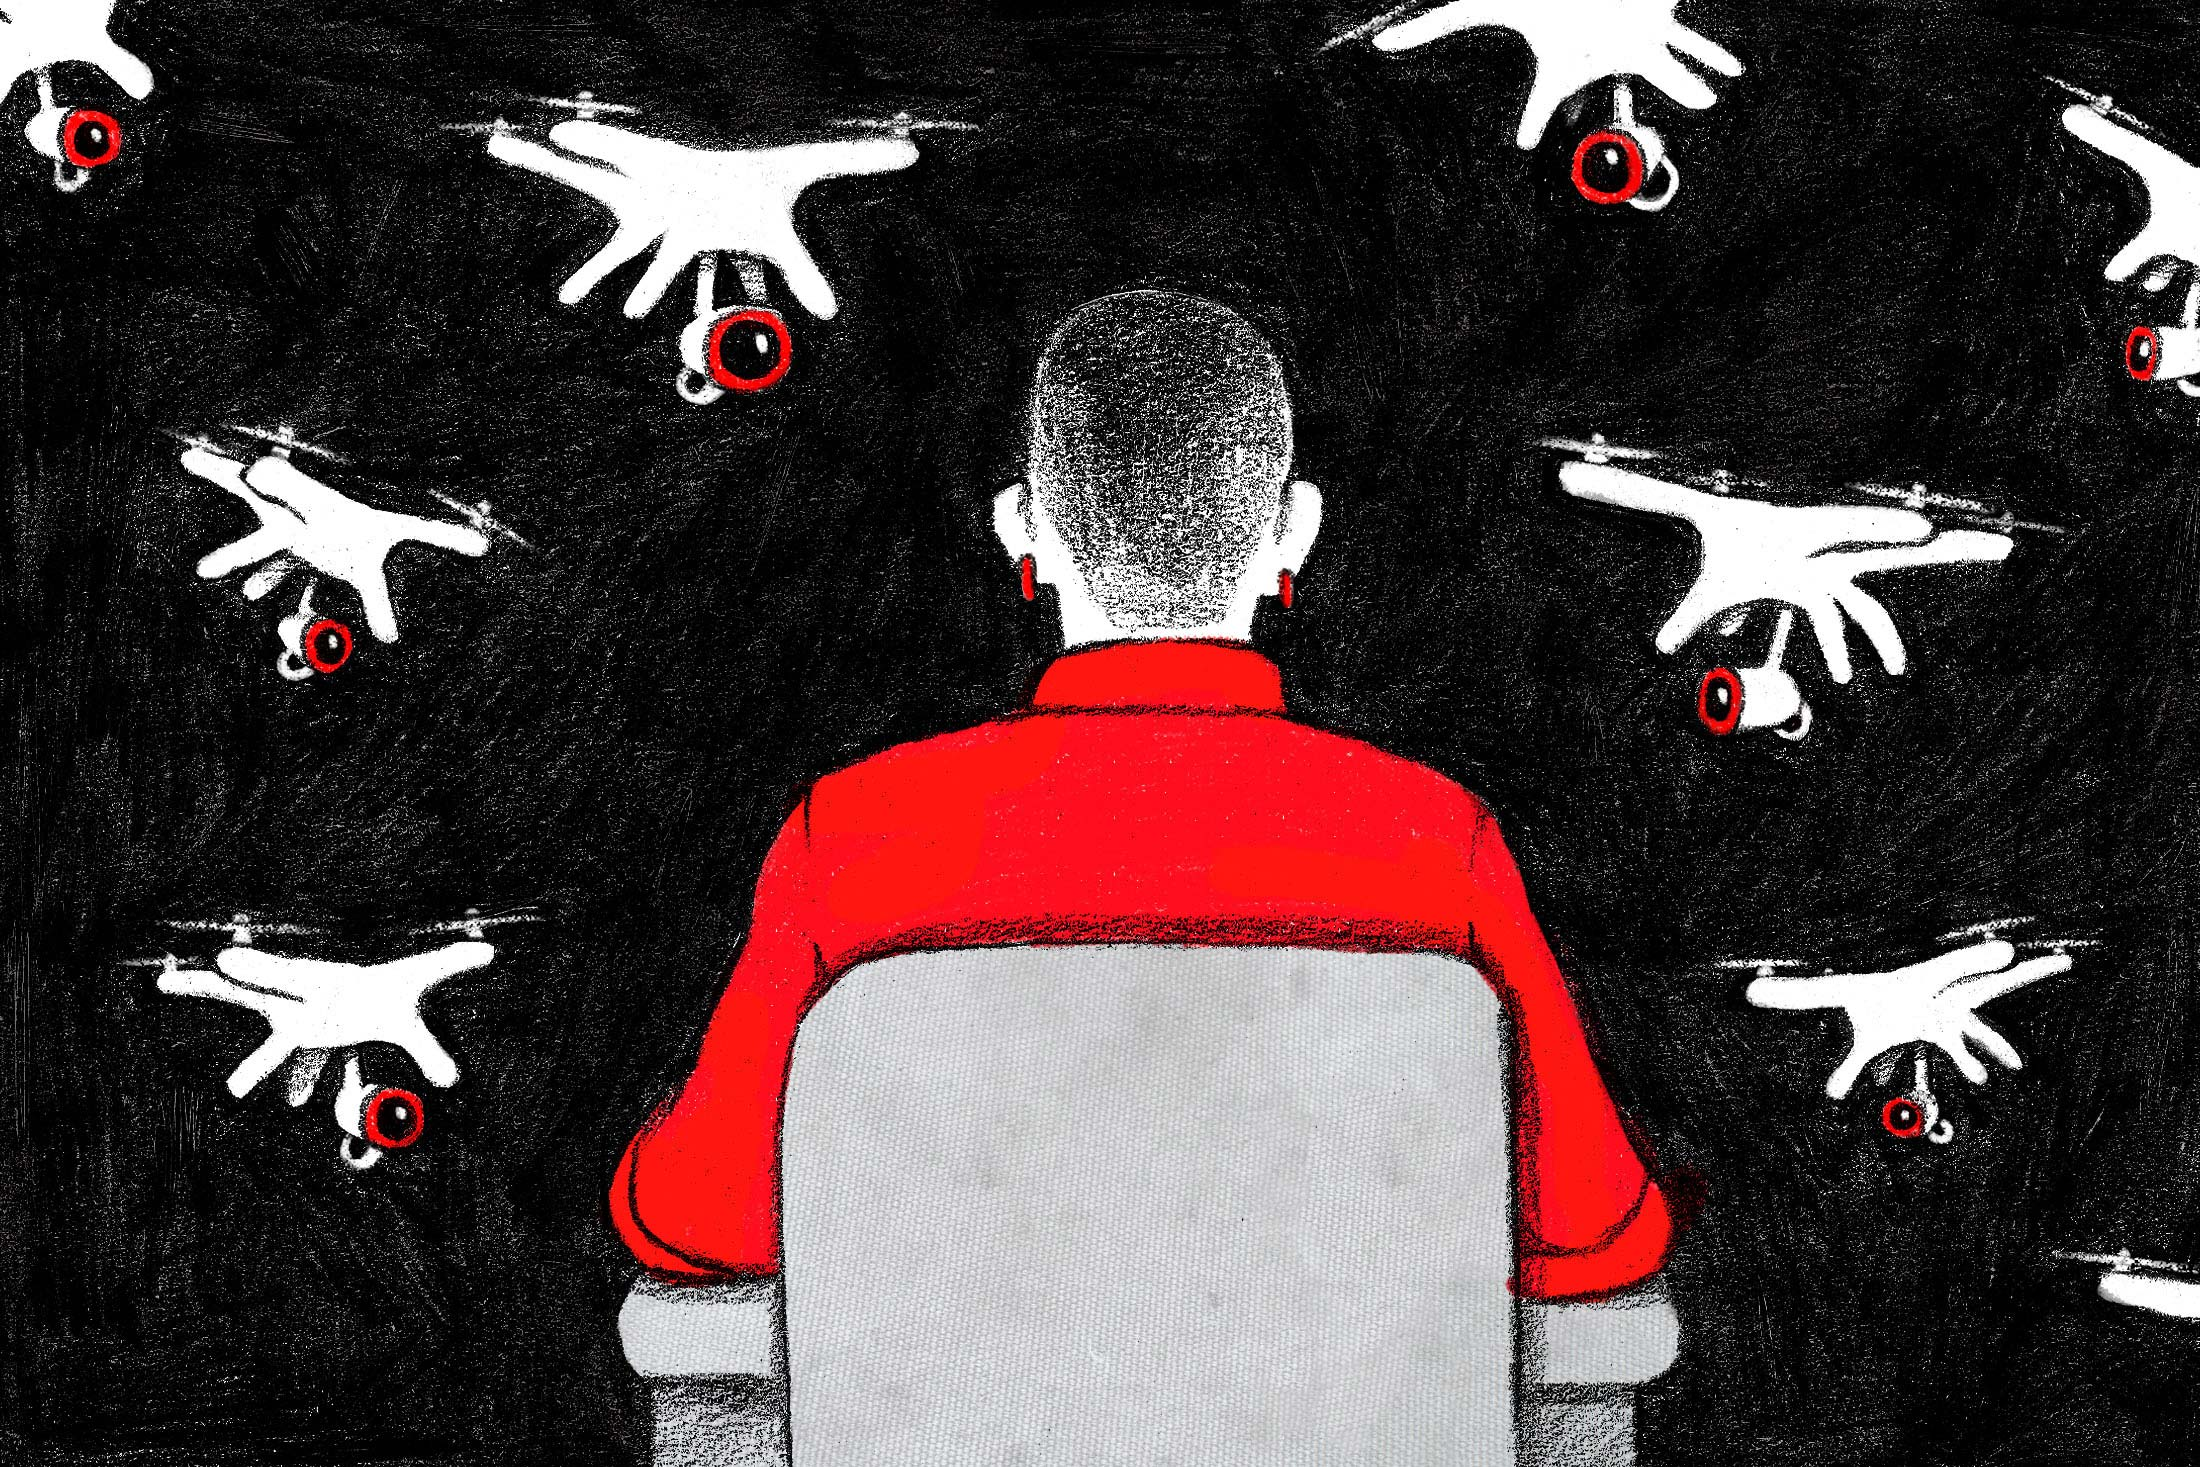 A woman looks out at a swarm of surveillance drones.